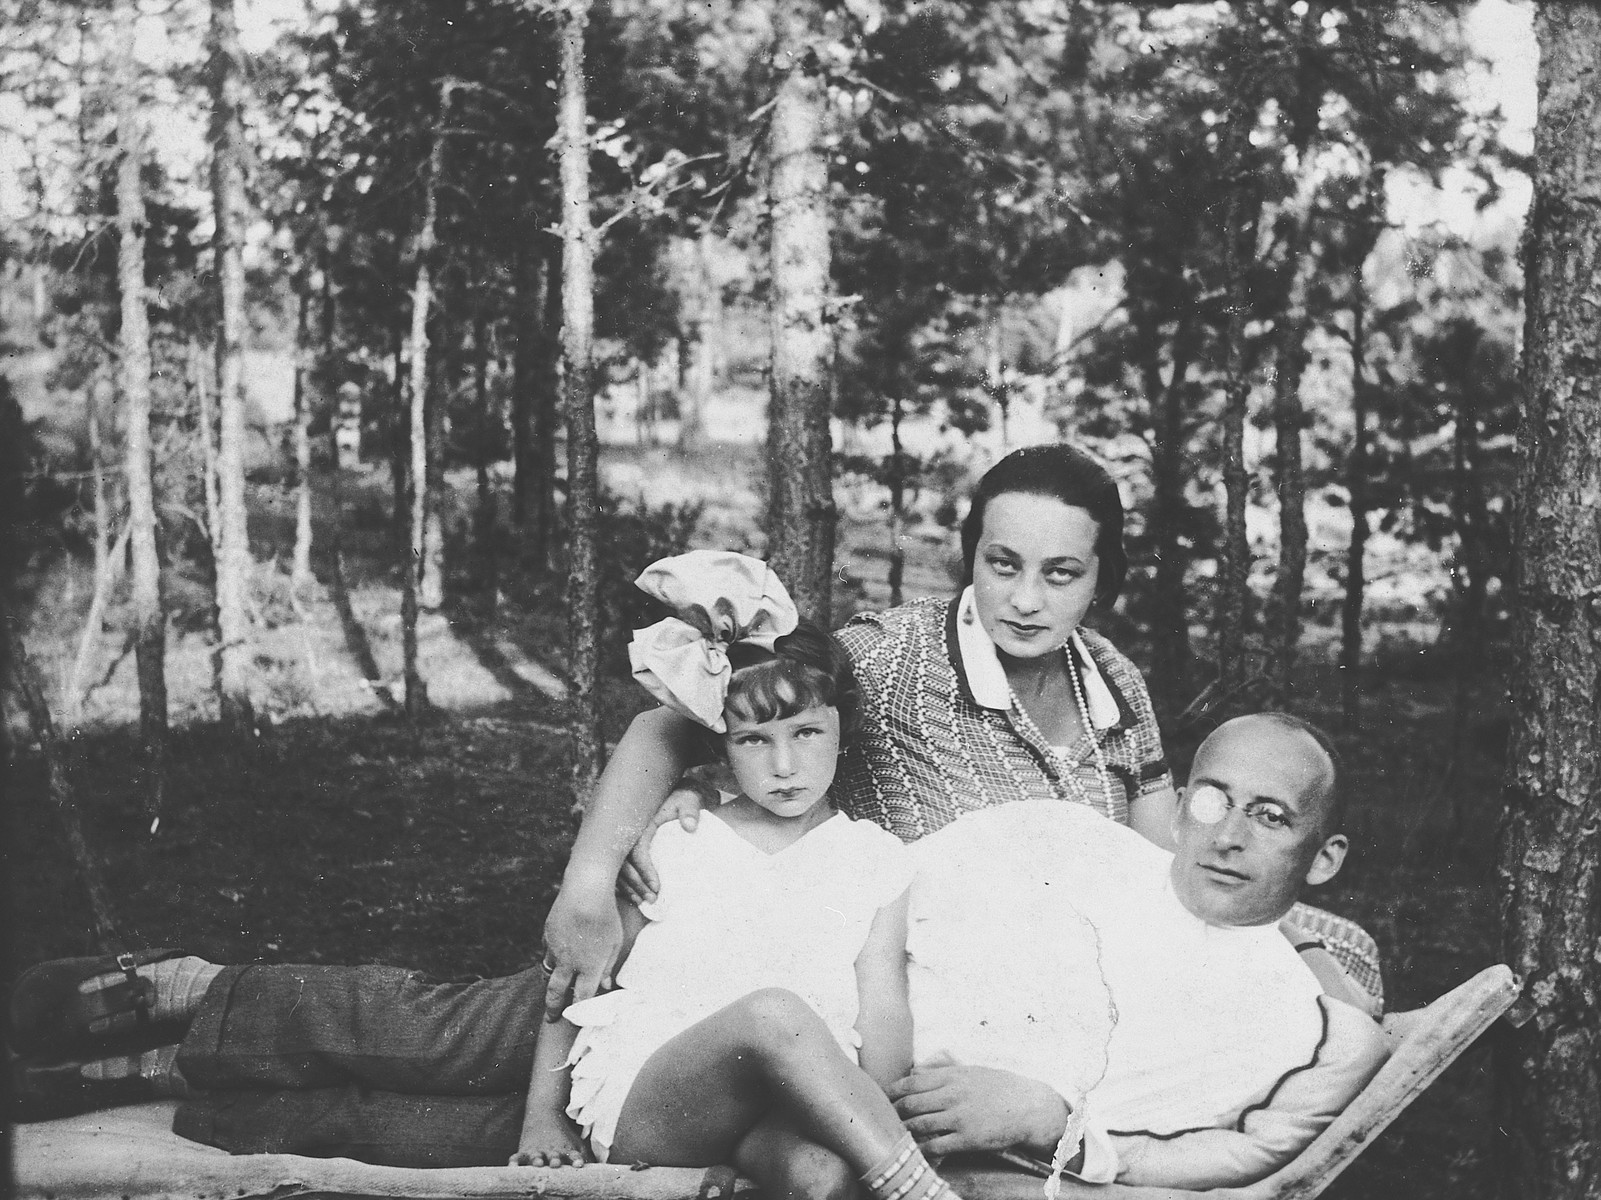 A Jewish family from Vilna poses on a lawn chair while on vacation in Podbrodzie.  Pictured are David, Henrietta, and Emilia Zeldowicz.